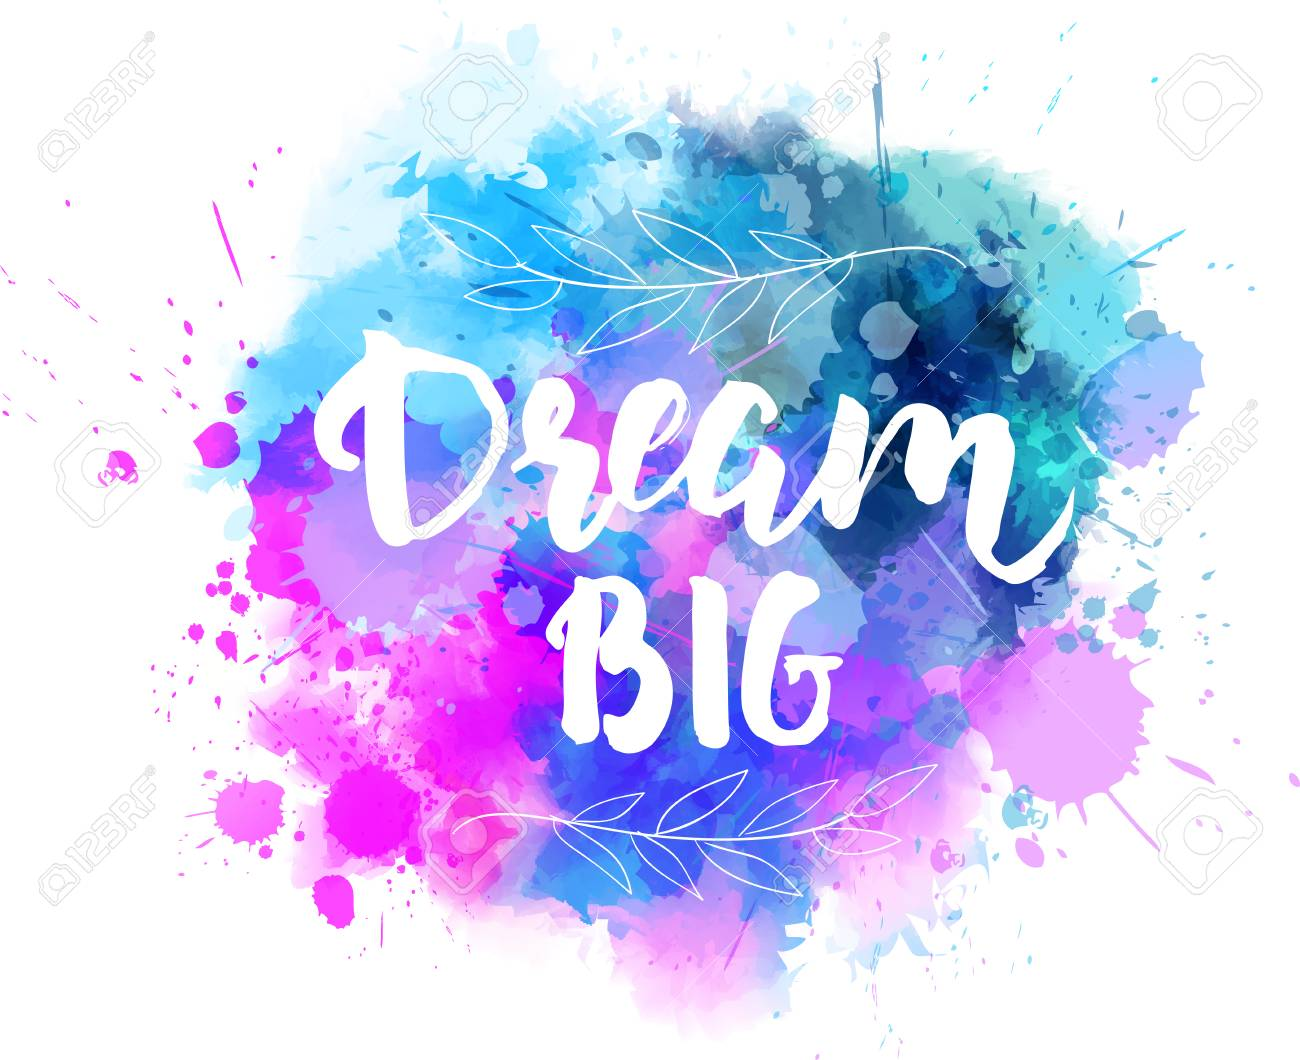 Dream big lettering on watercolored background